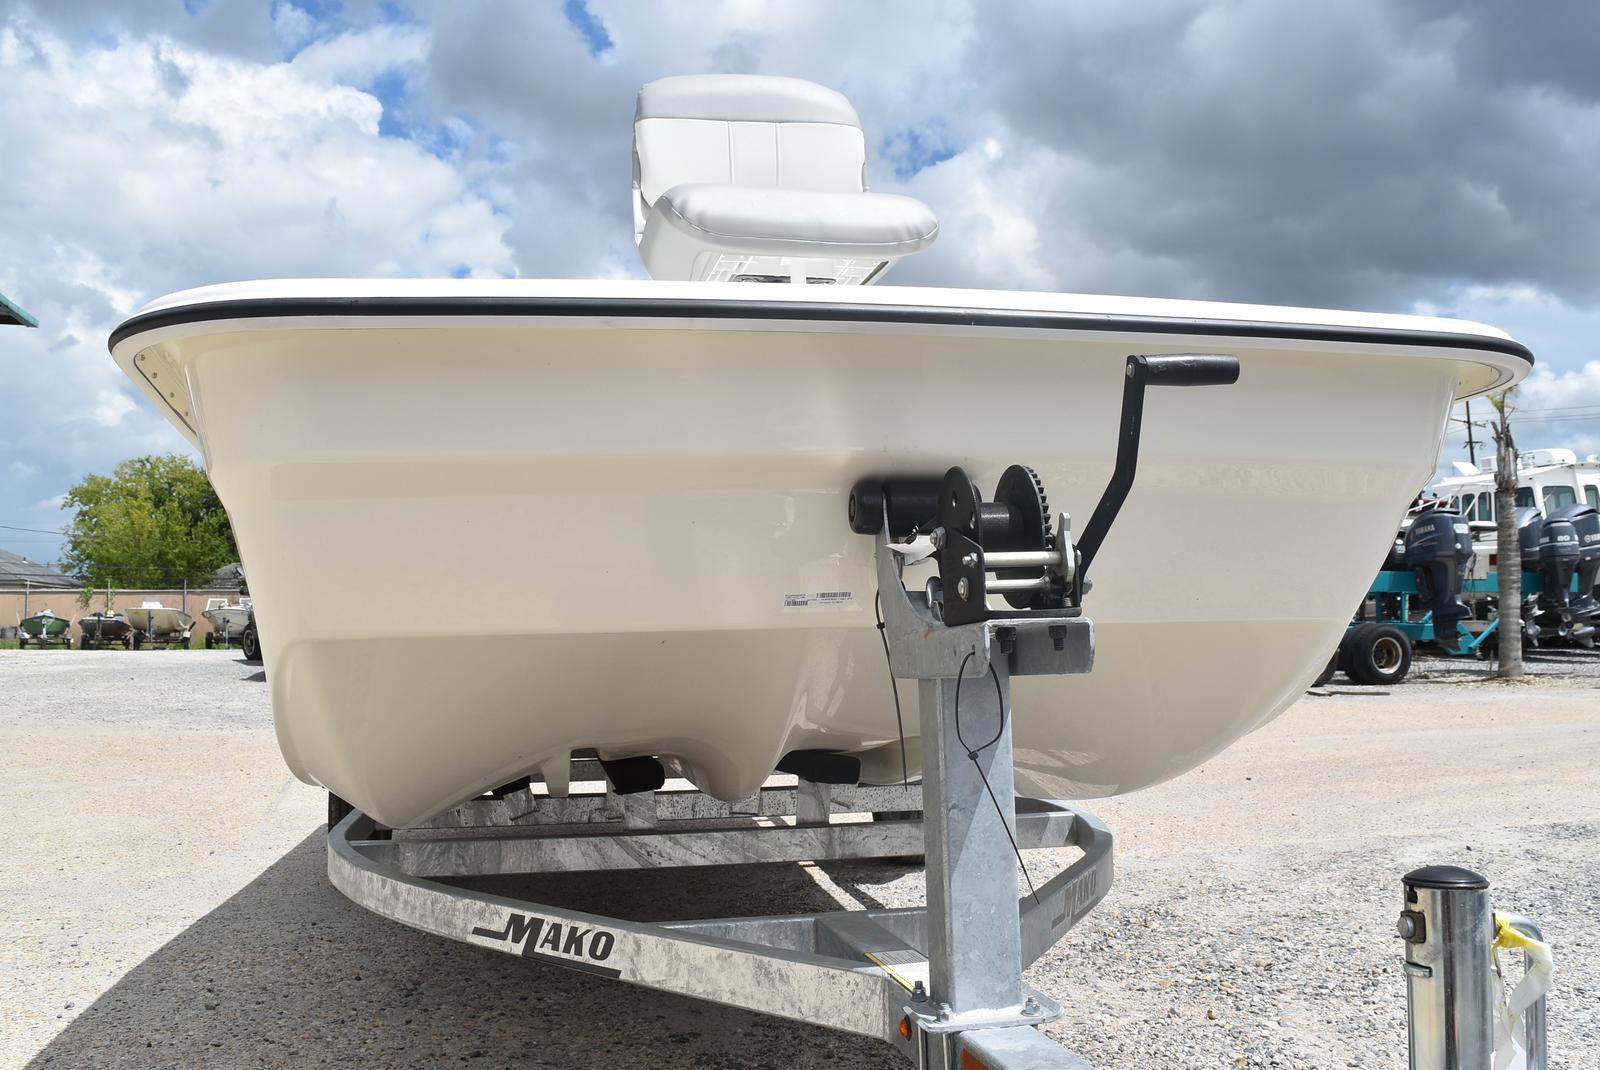 2020 Mako boat for sale, model of the boat is Pro Skiff 17, 75 ELPT & Image # 318 of 702